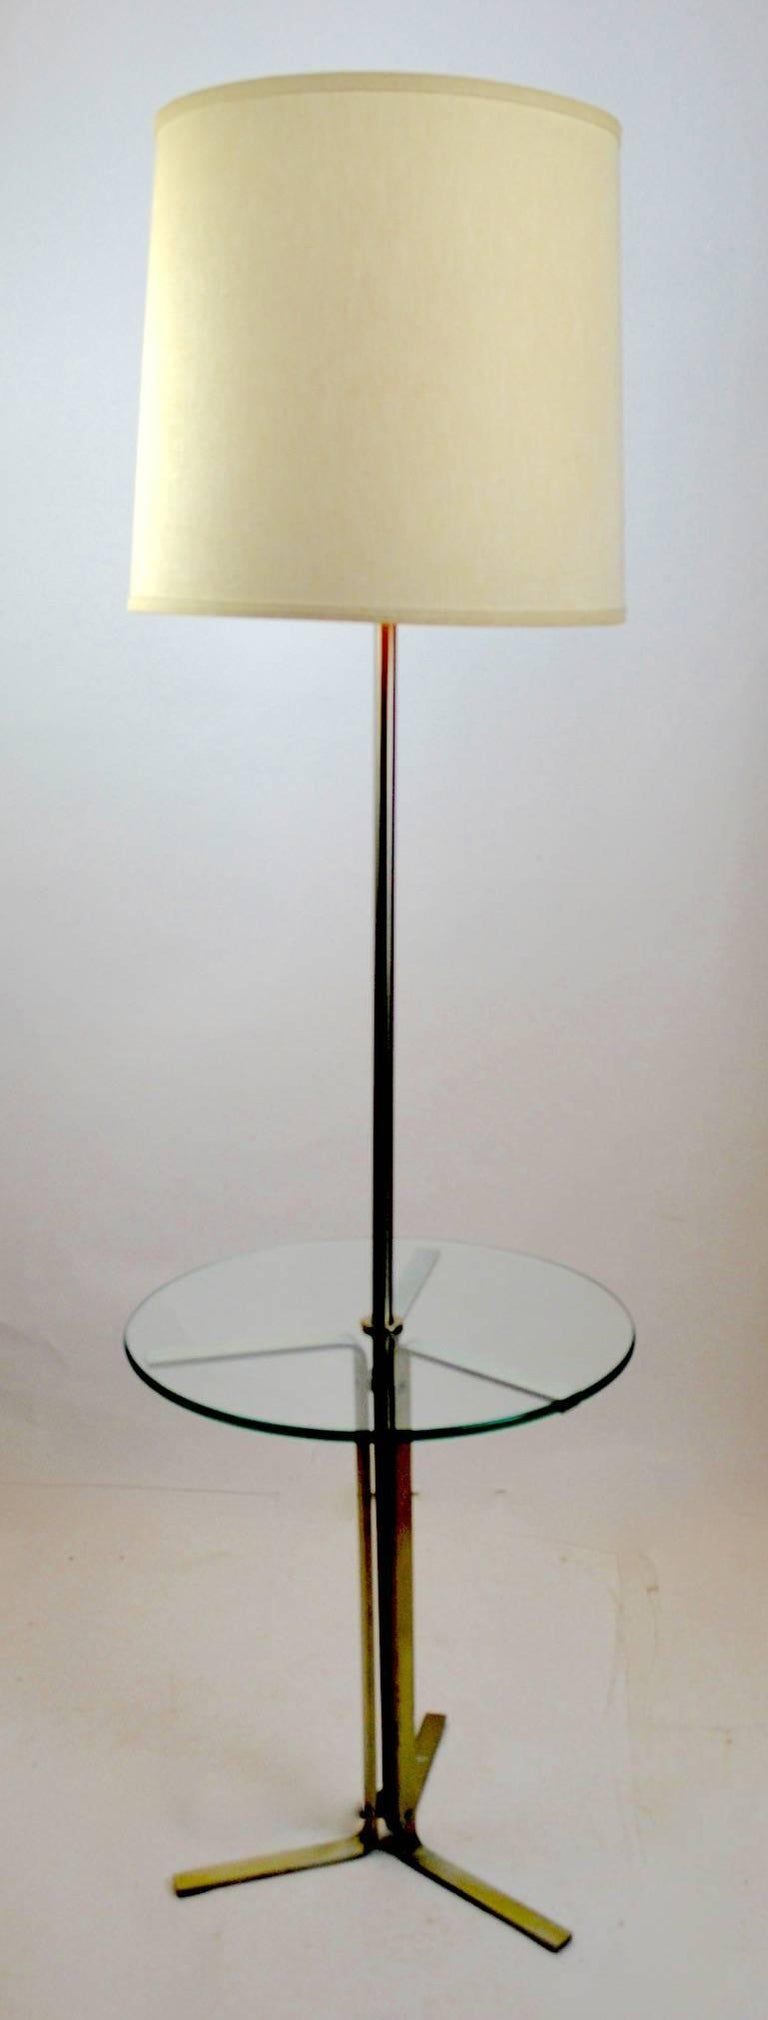 20th Century Floor Table Lamp by the Laurel Lamp Company For Sale